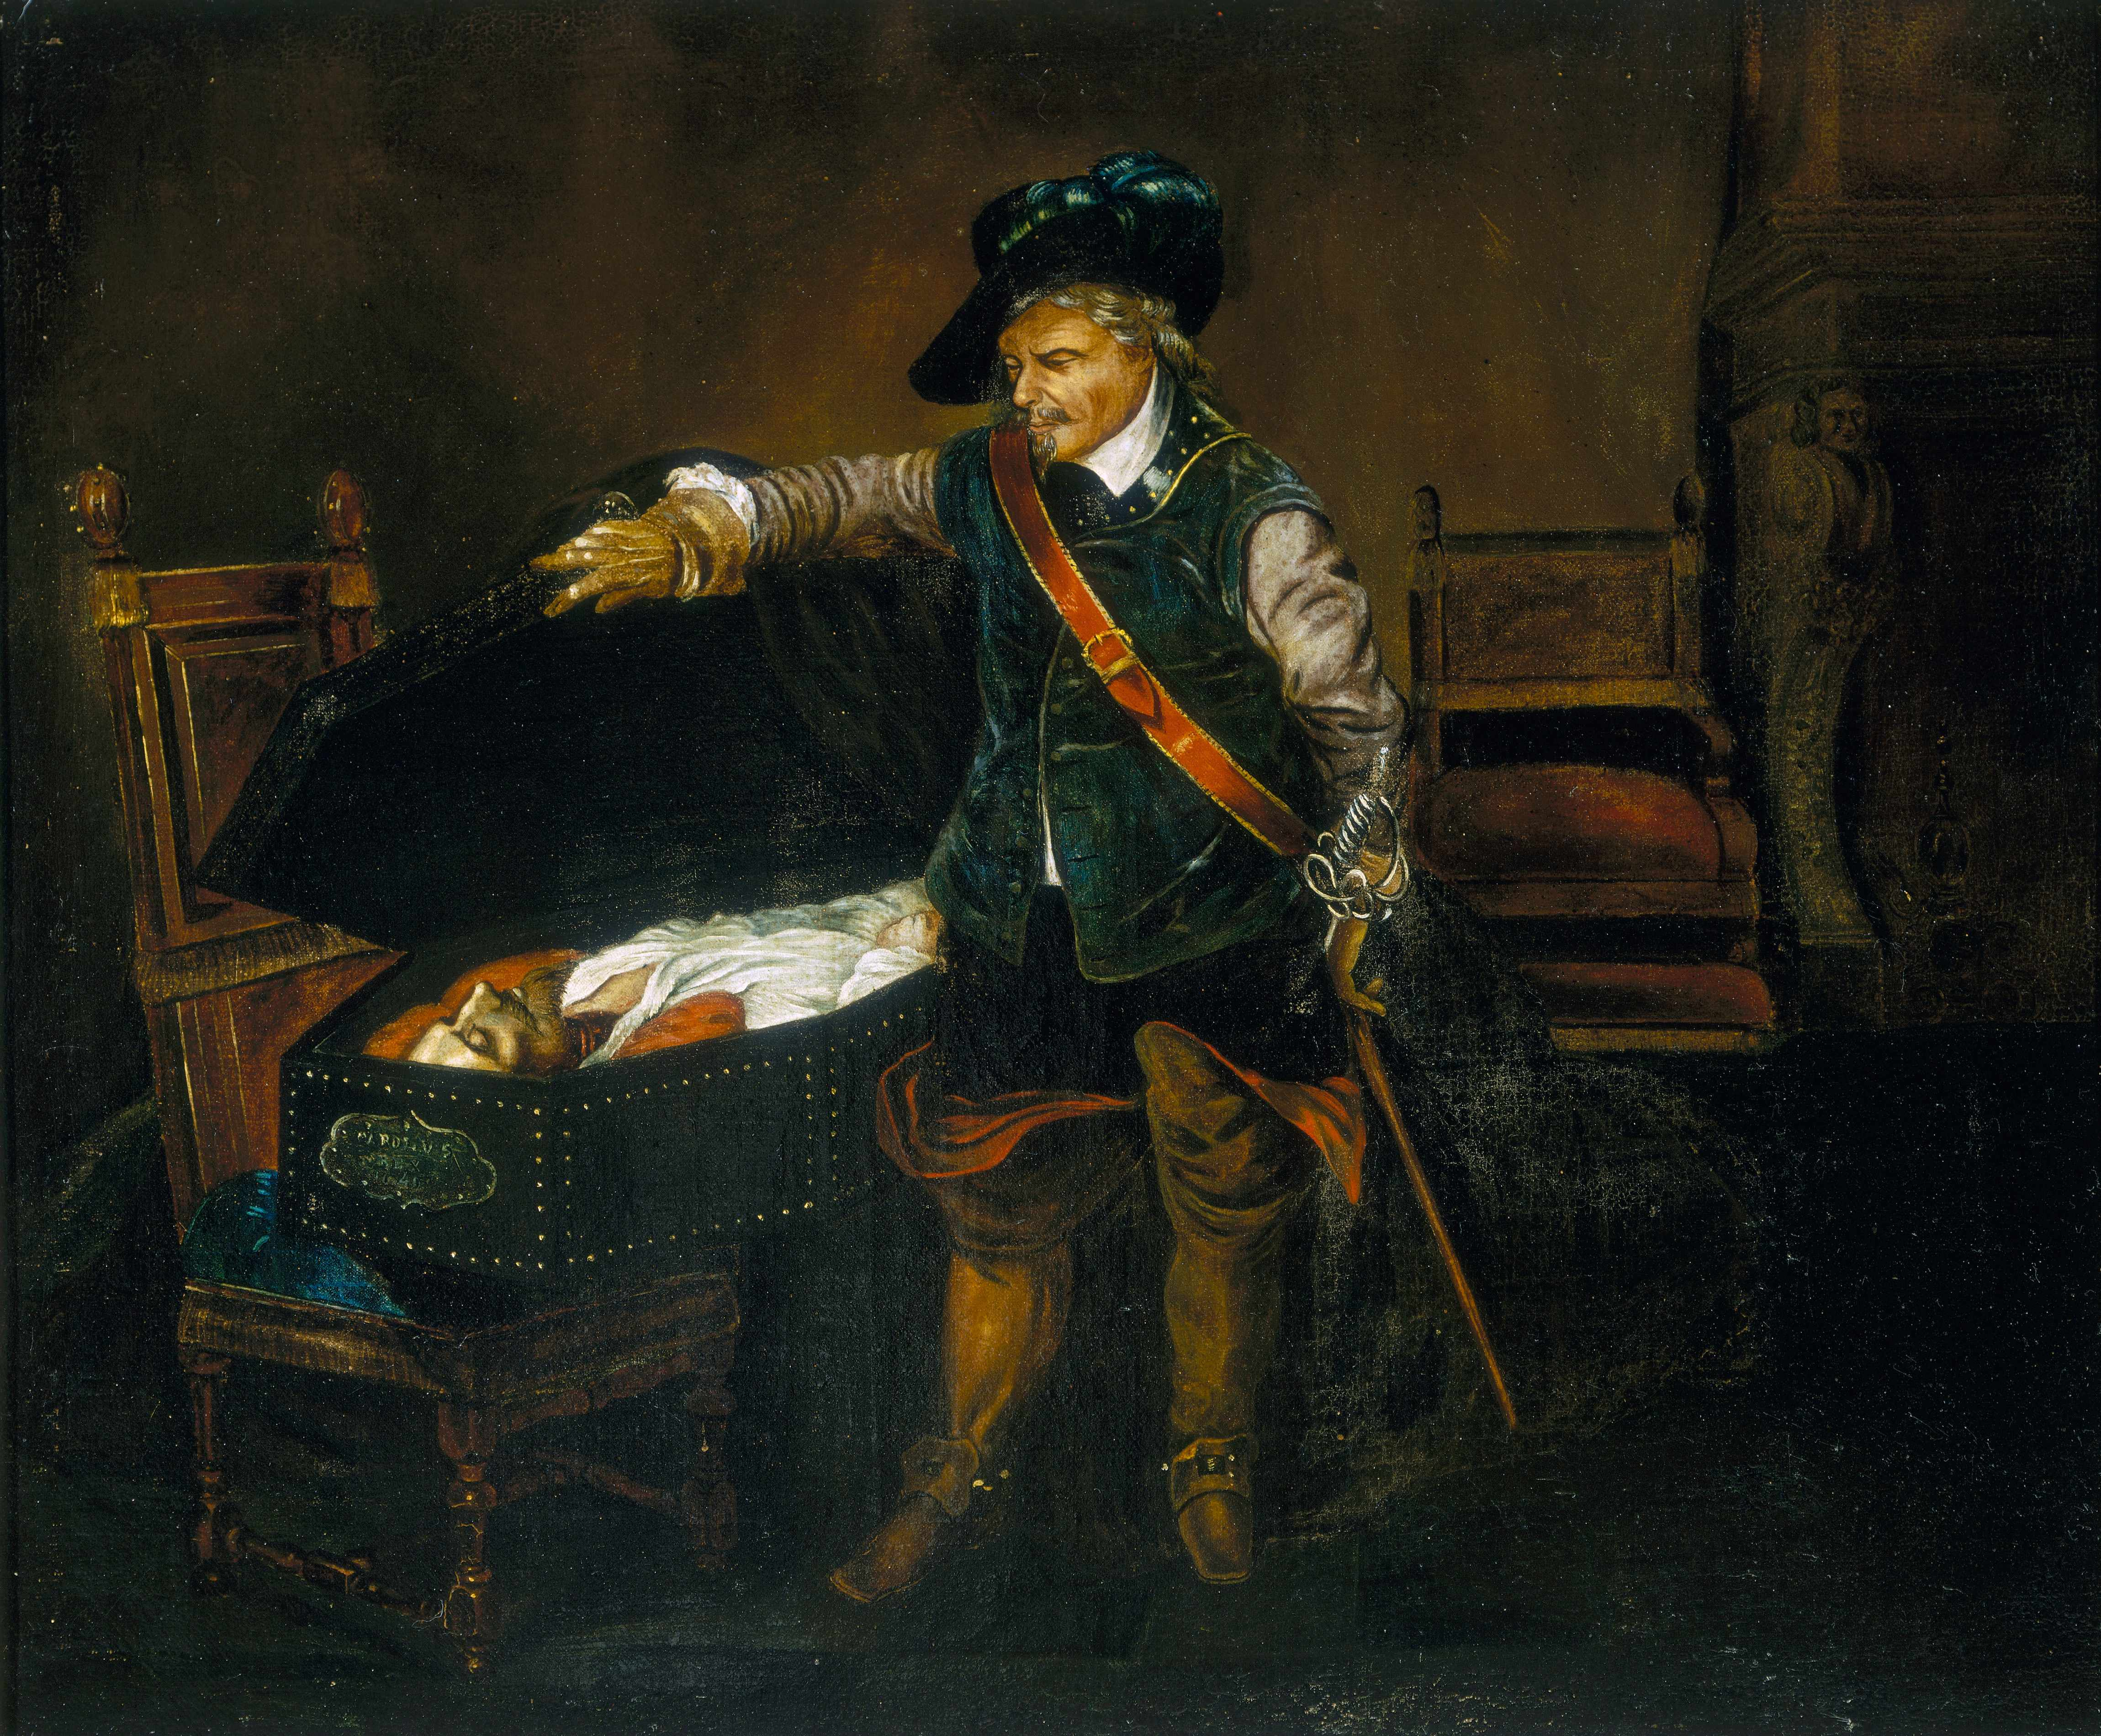 A painting depicting Oliver Cromwell gazing at the body of Charles I